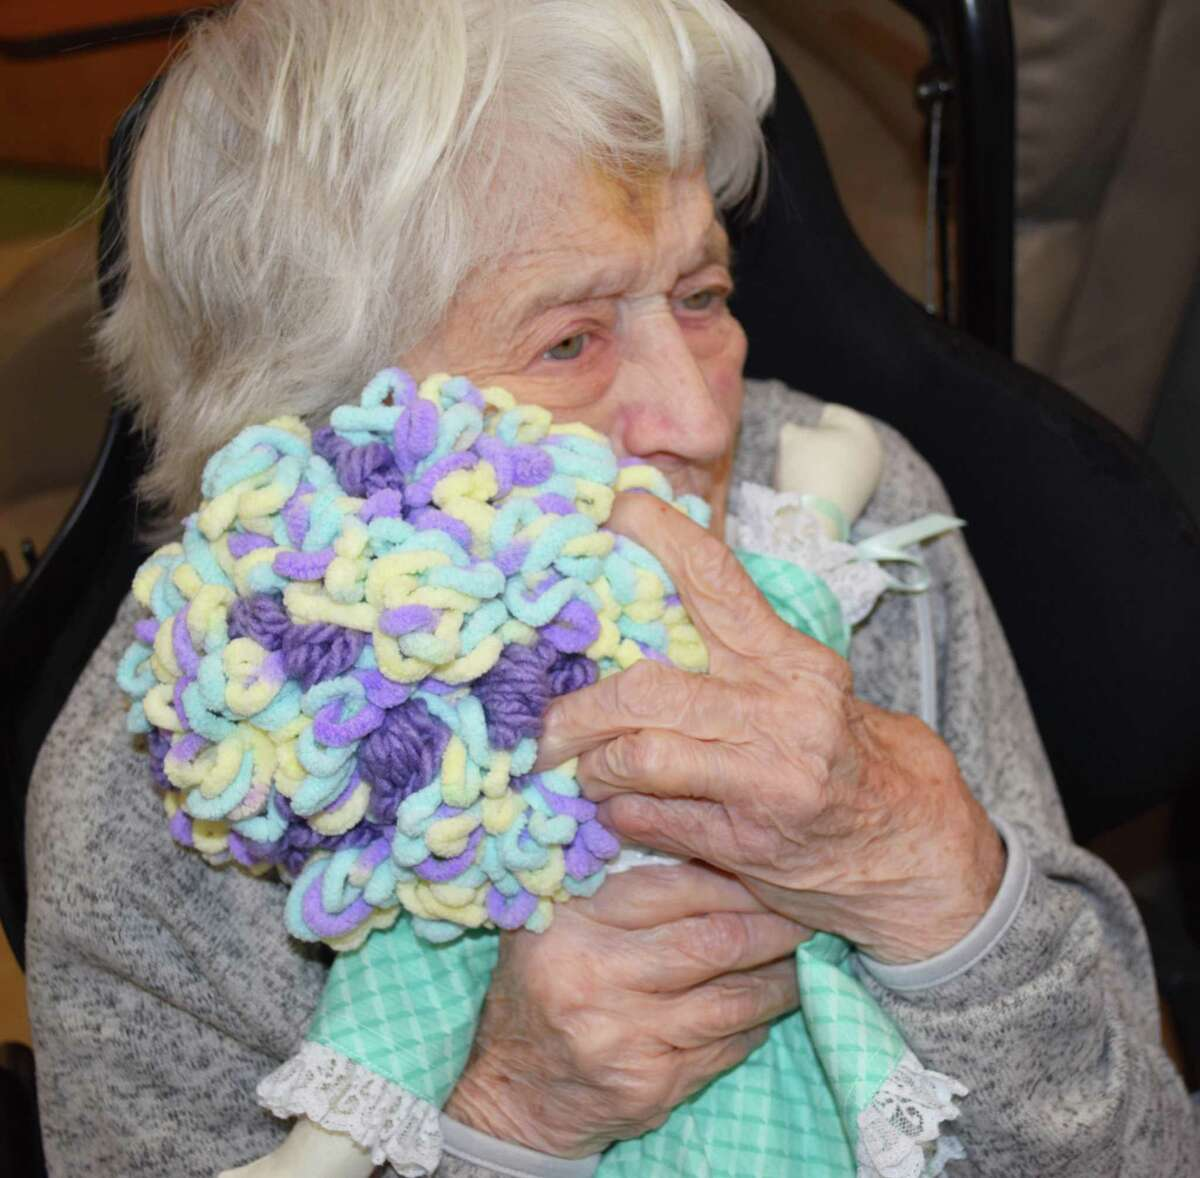 """Spectrum/A number of residents at Candlewood Valley Health & Rehabilitation in New Milford were recently visited by members of The Giving Doll group of Oxford. The members presented residents with handmade dolls. Above, resident Elizabeth """"Betty"""" Osborne hugs her doll. November 2019"""